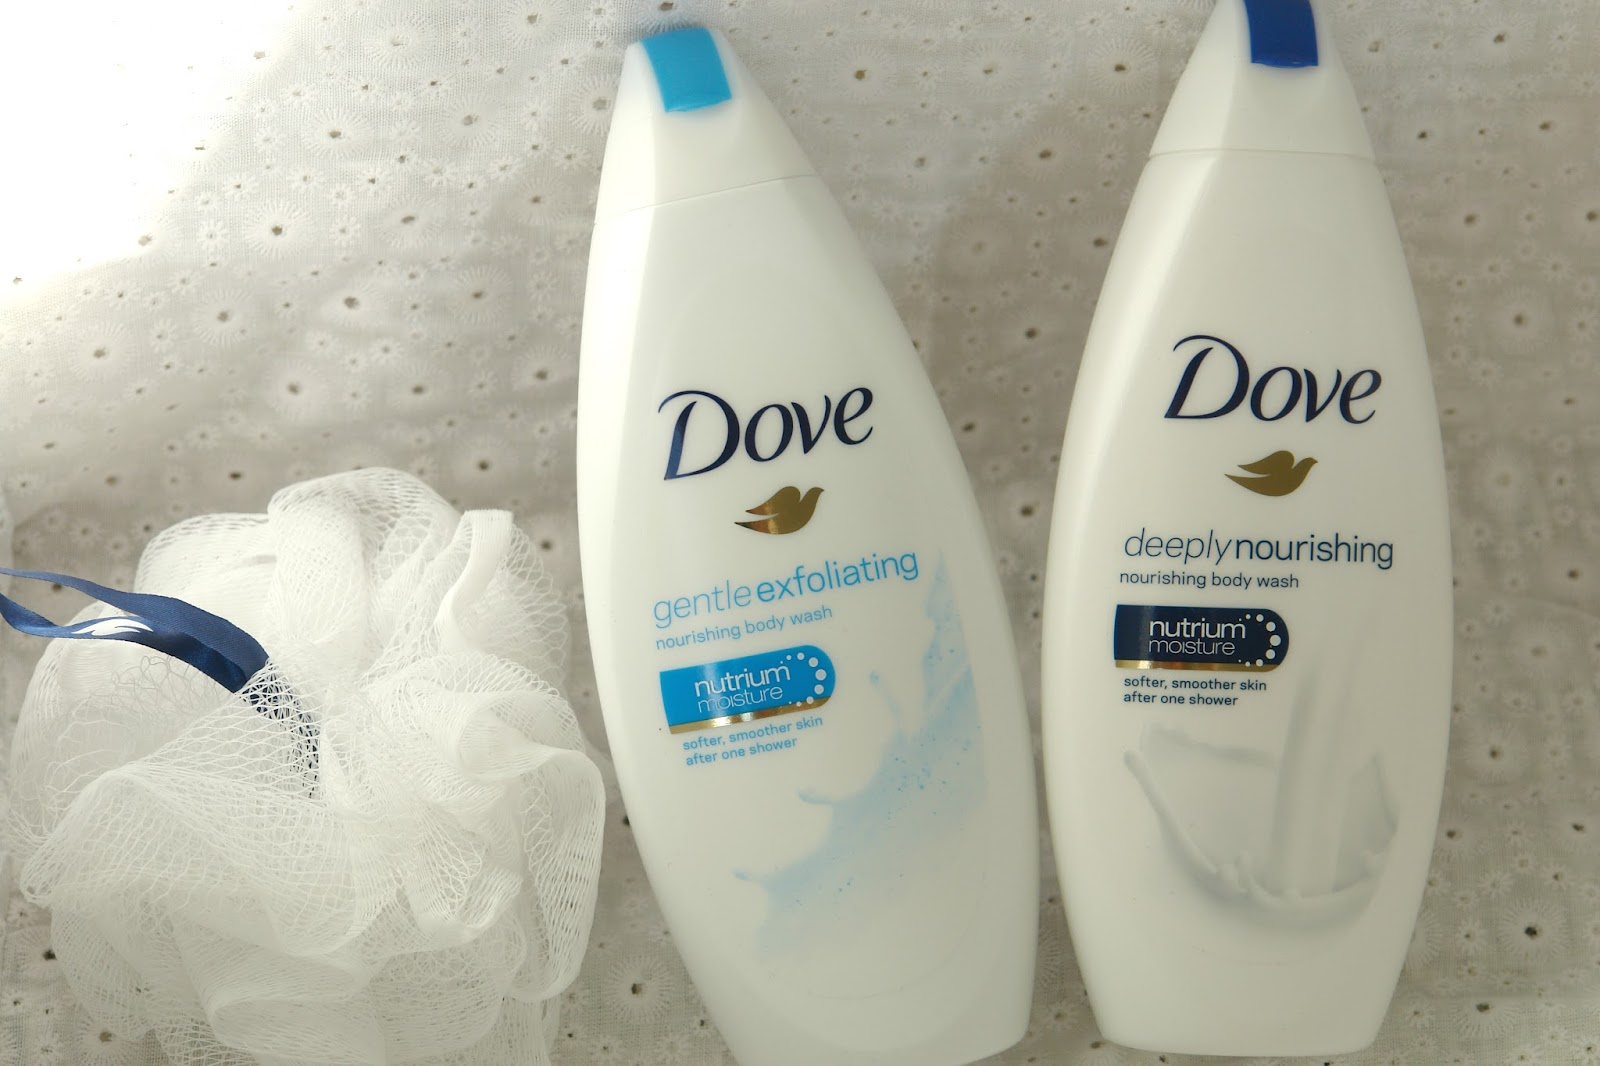 New Dove ranges, Dove Deeply Nourishing Body Wash, Dove Gentle Exfoliating Body Wash, beauty, Dove, review,